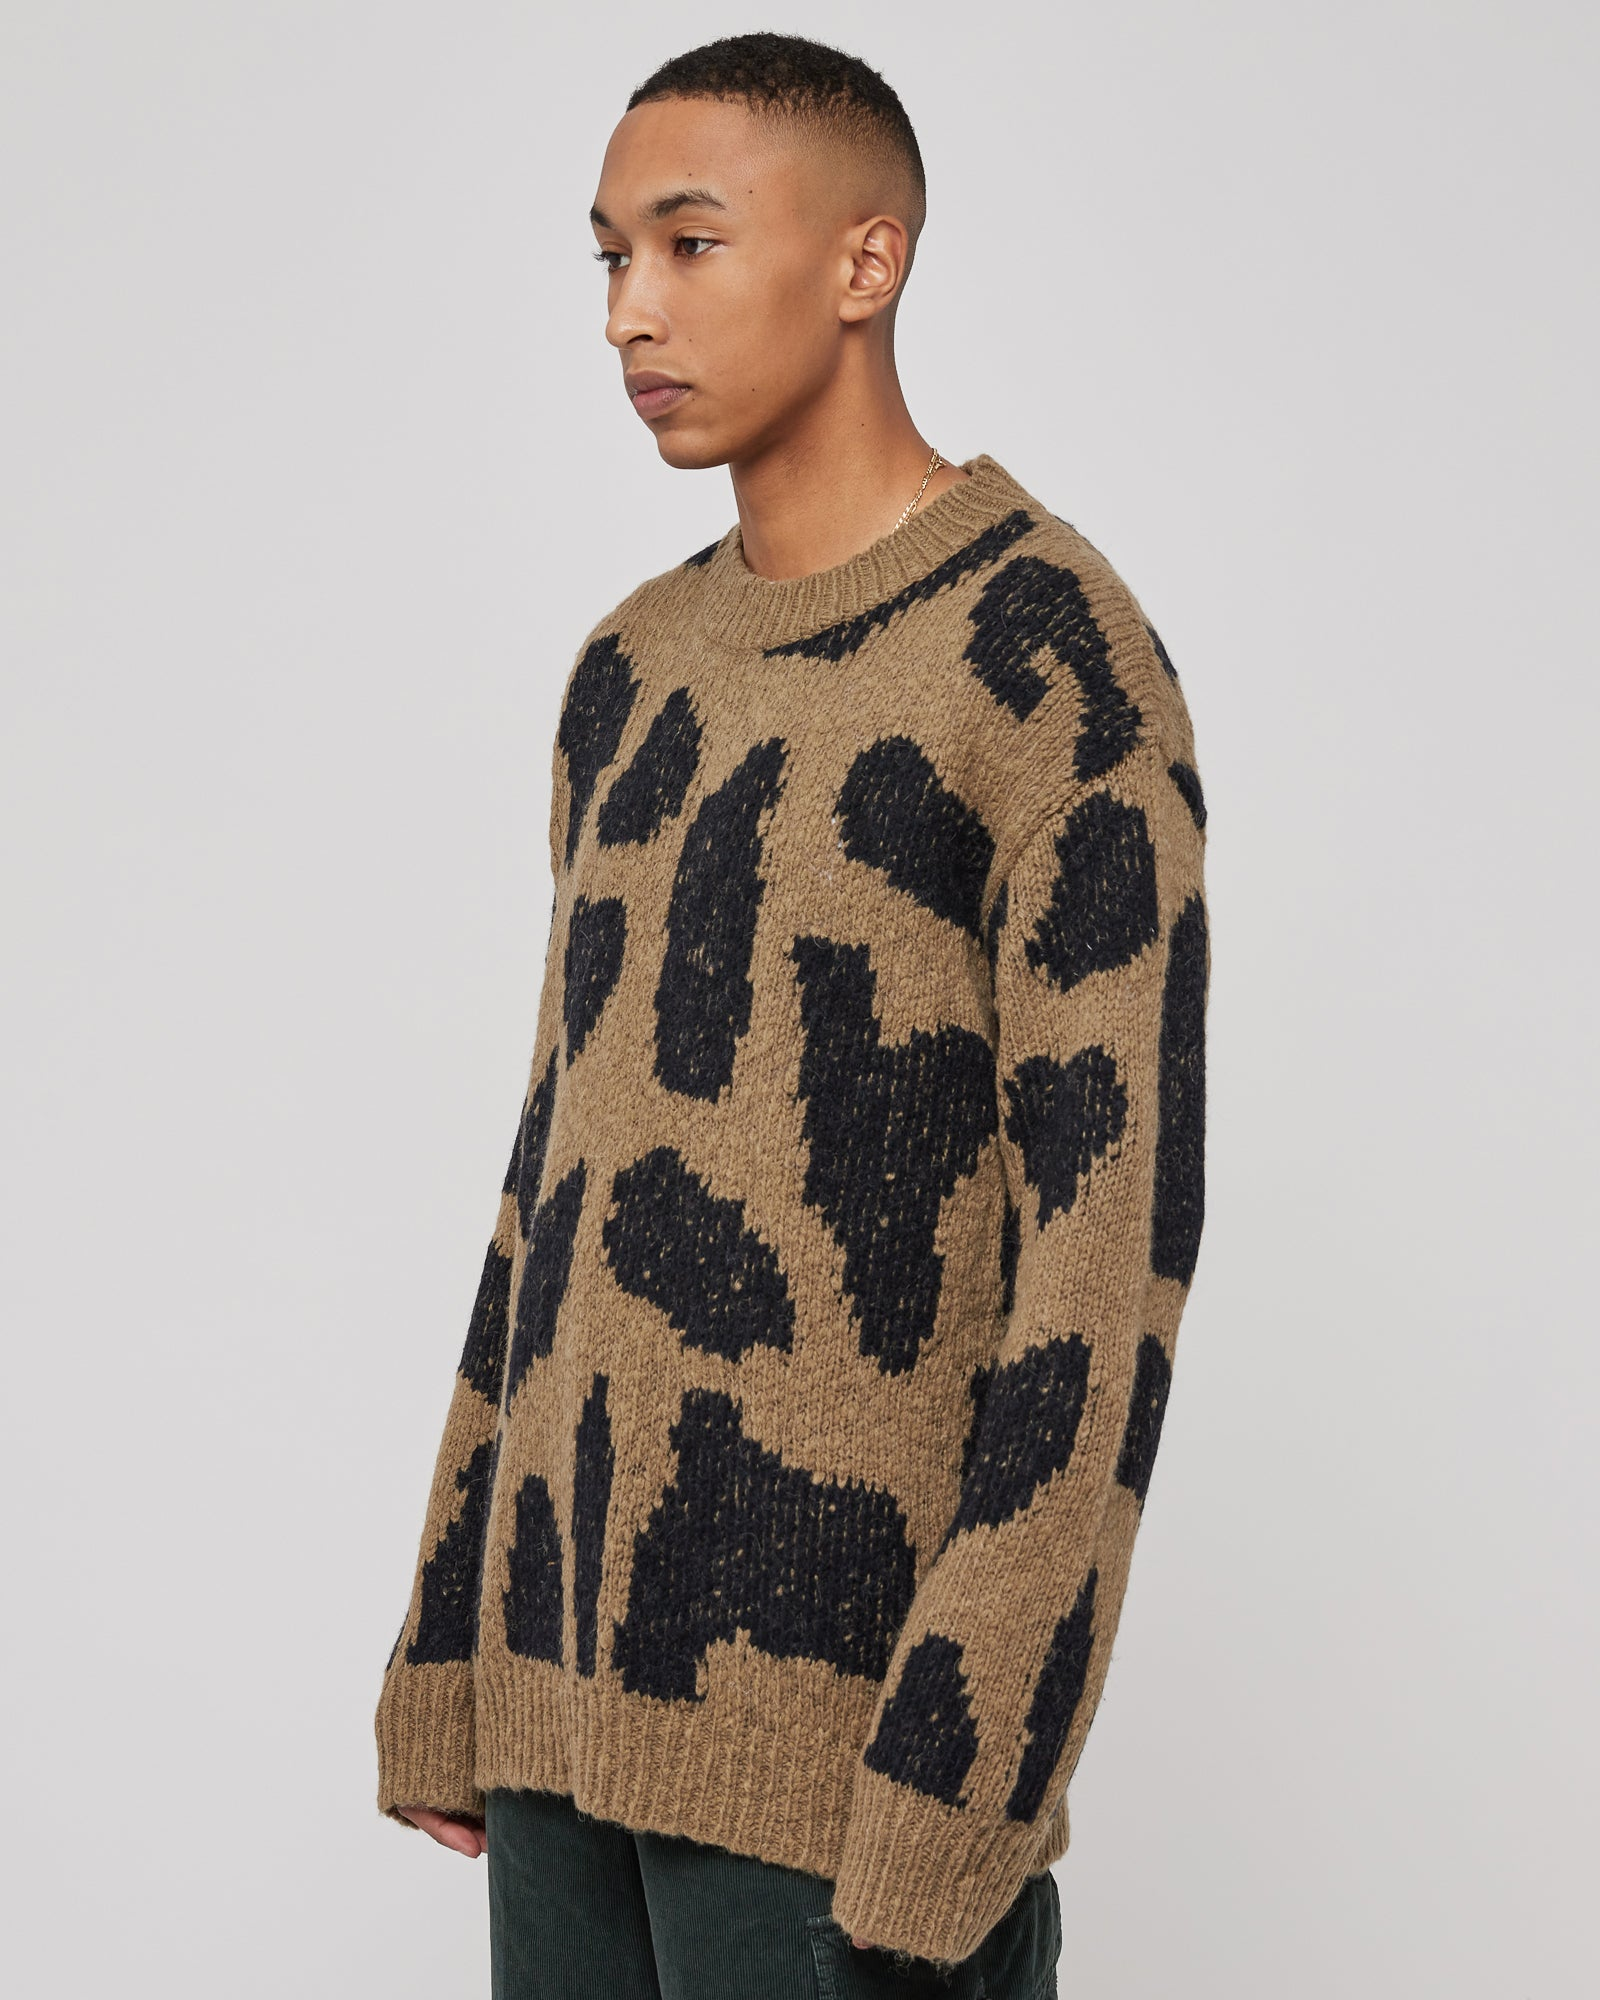 Maddox Sweater in Kaki